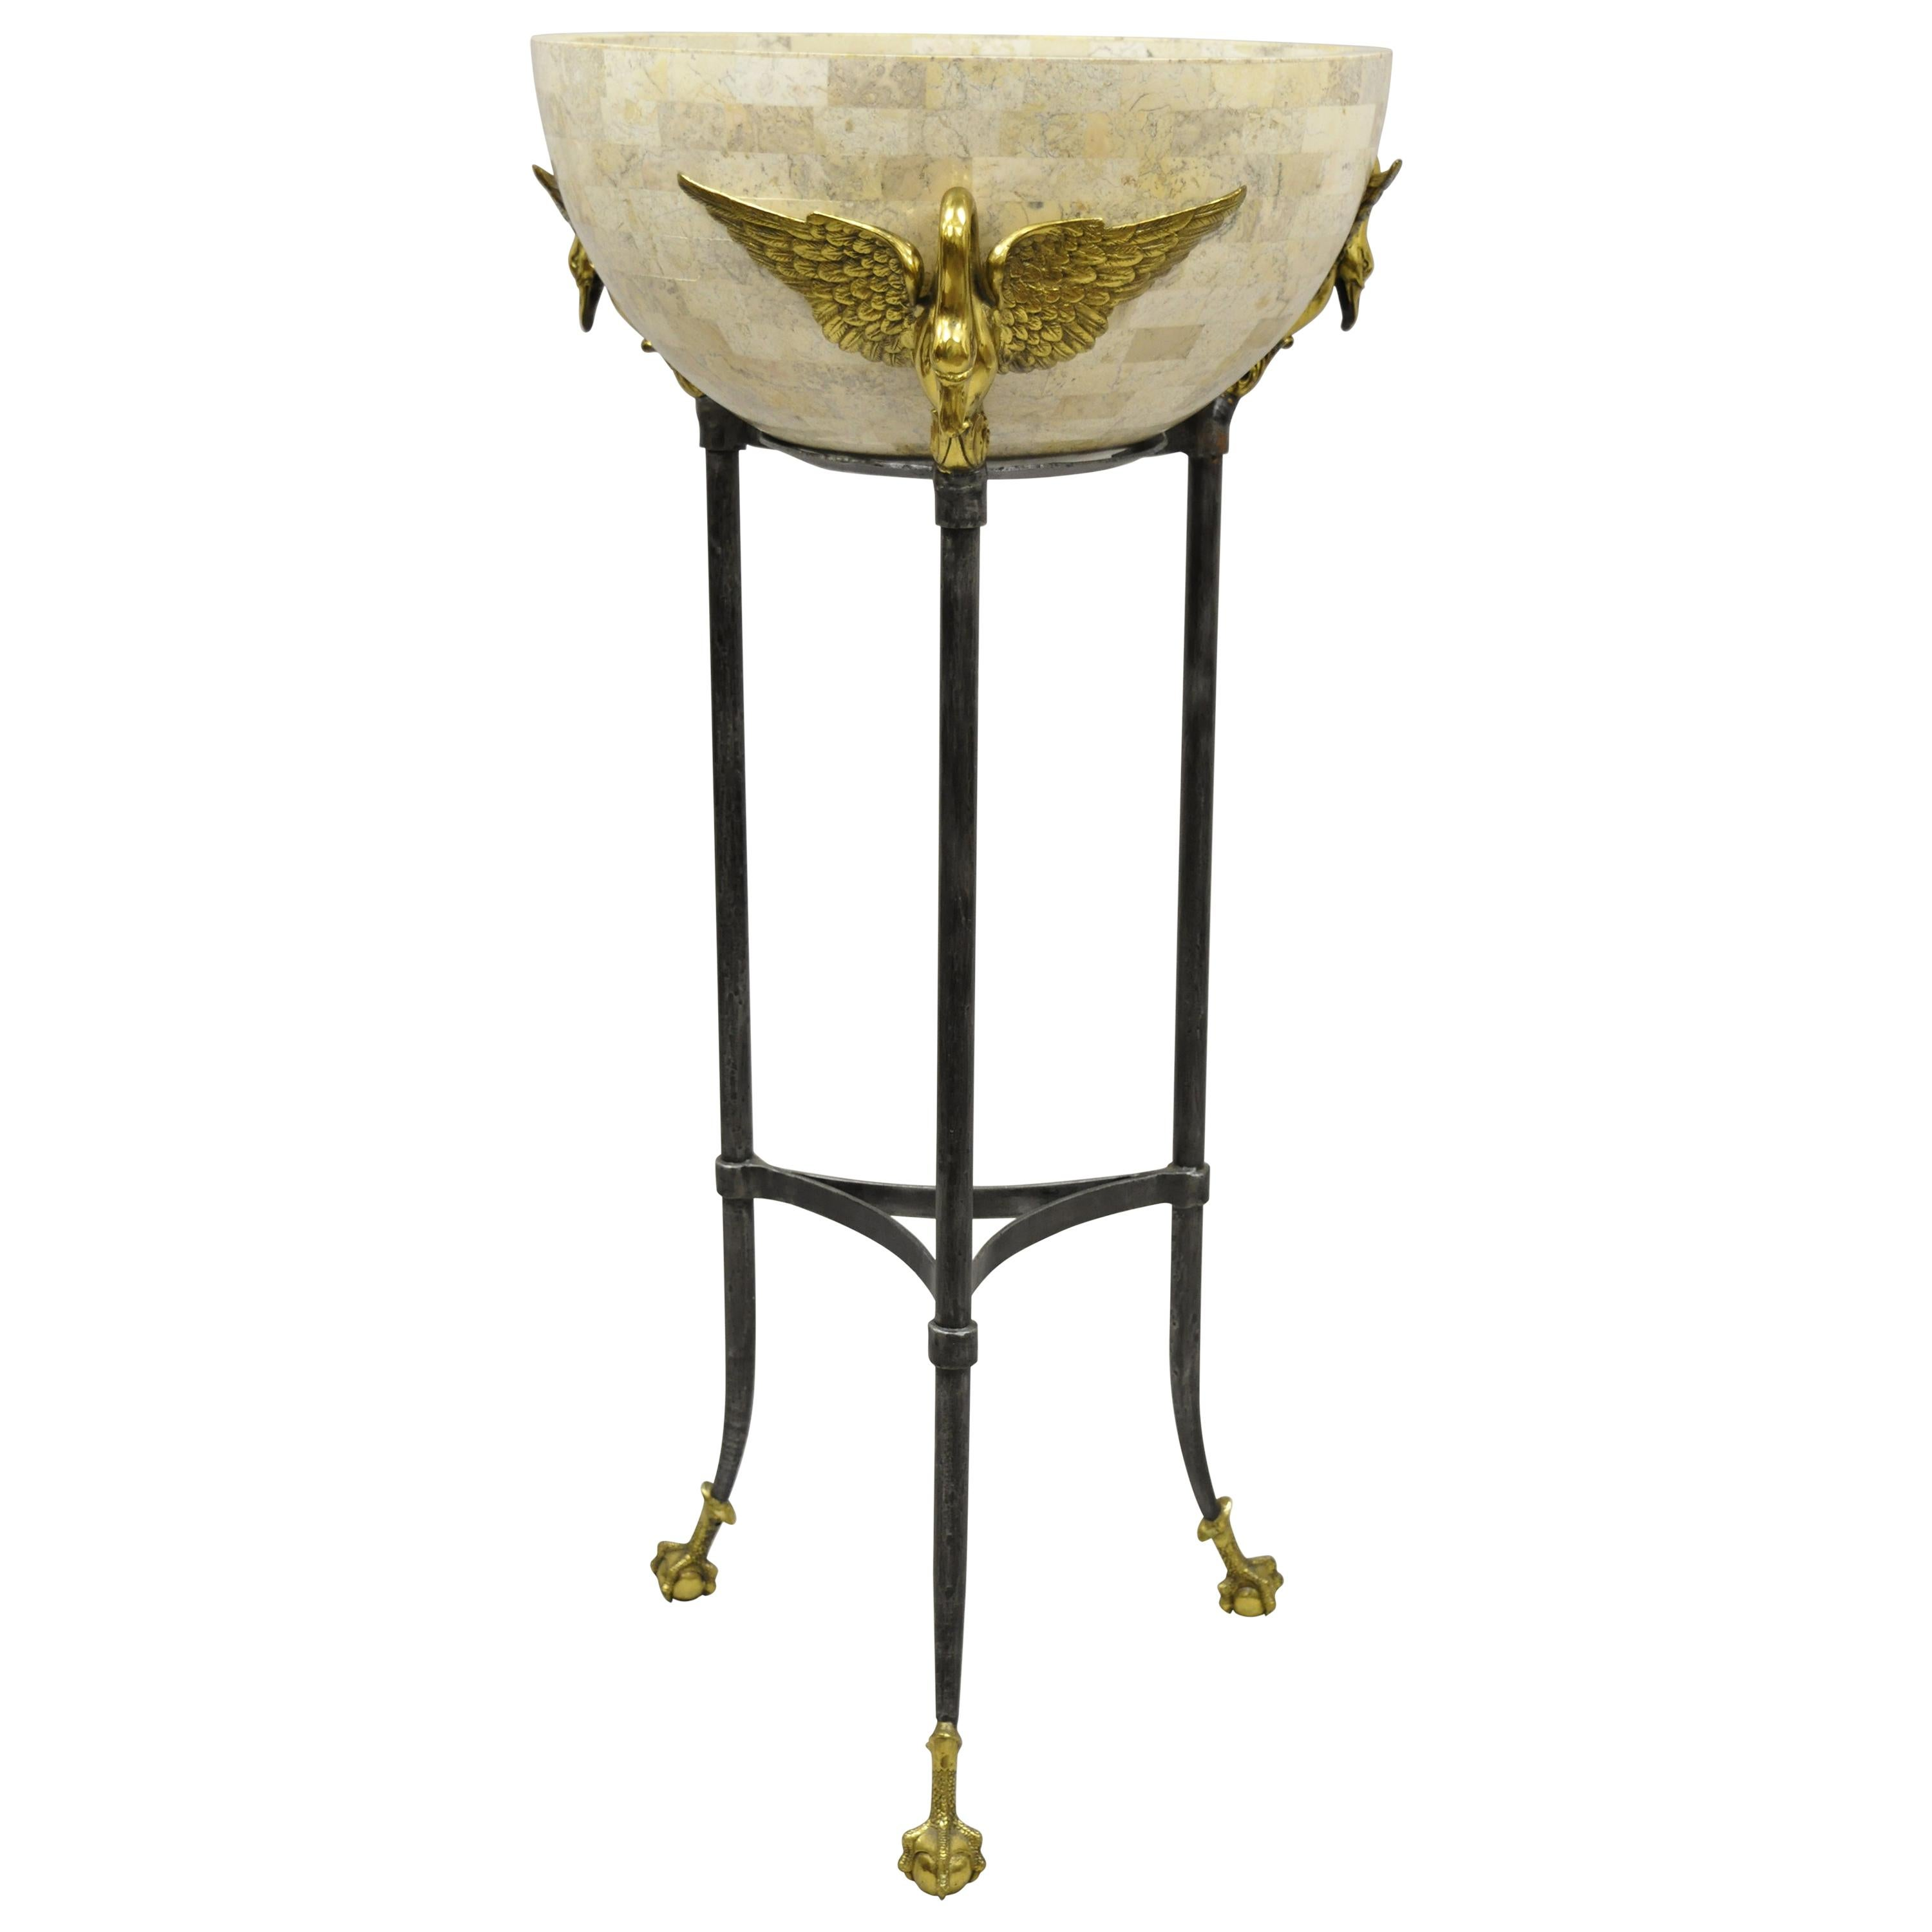 Maitland Smith French Empire Brass Swan Tessellated Marble Planter Jardinière